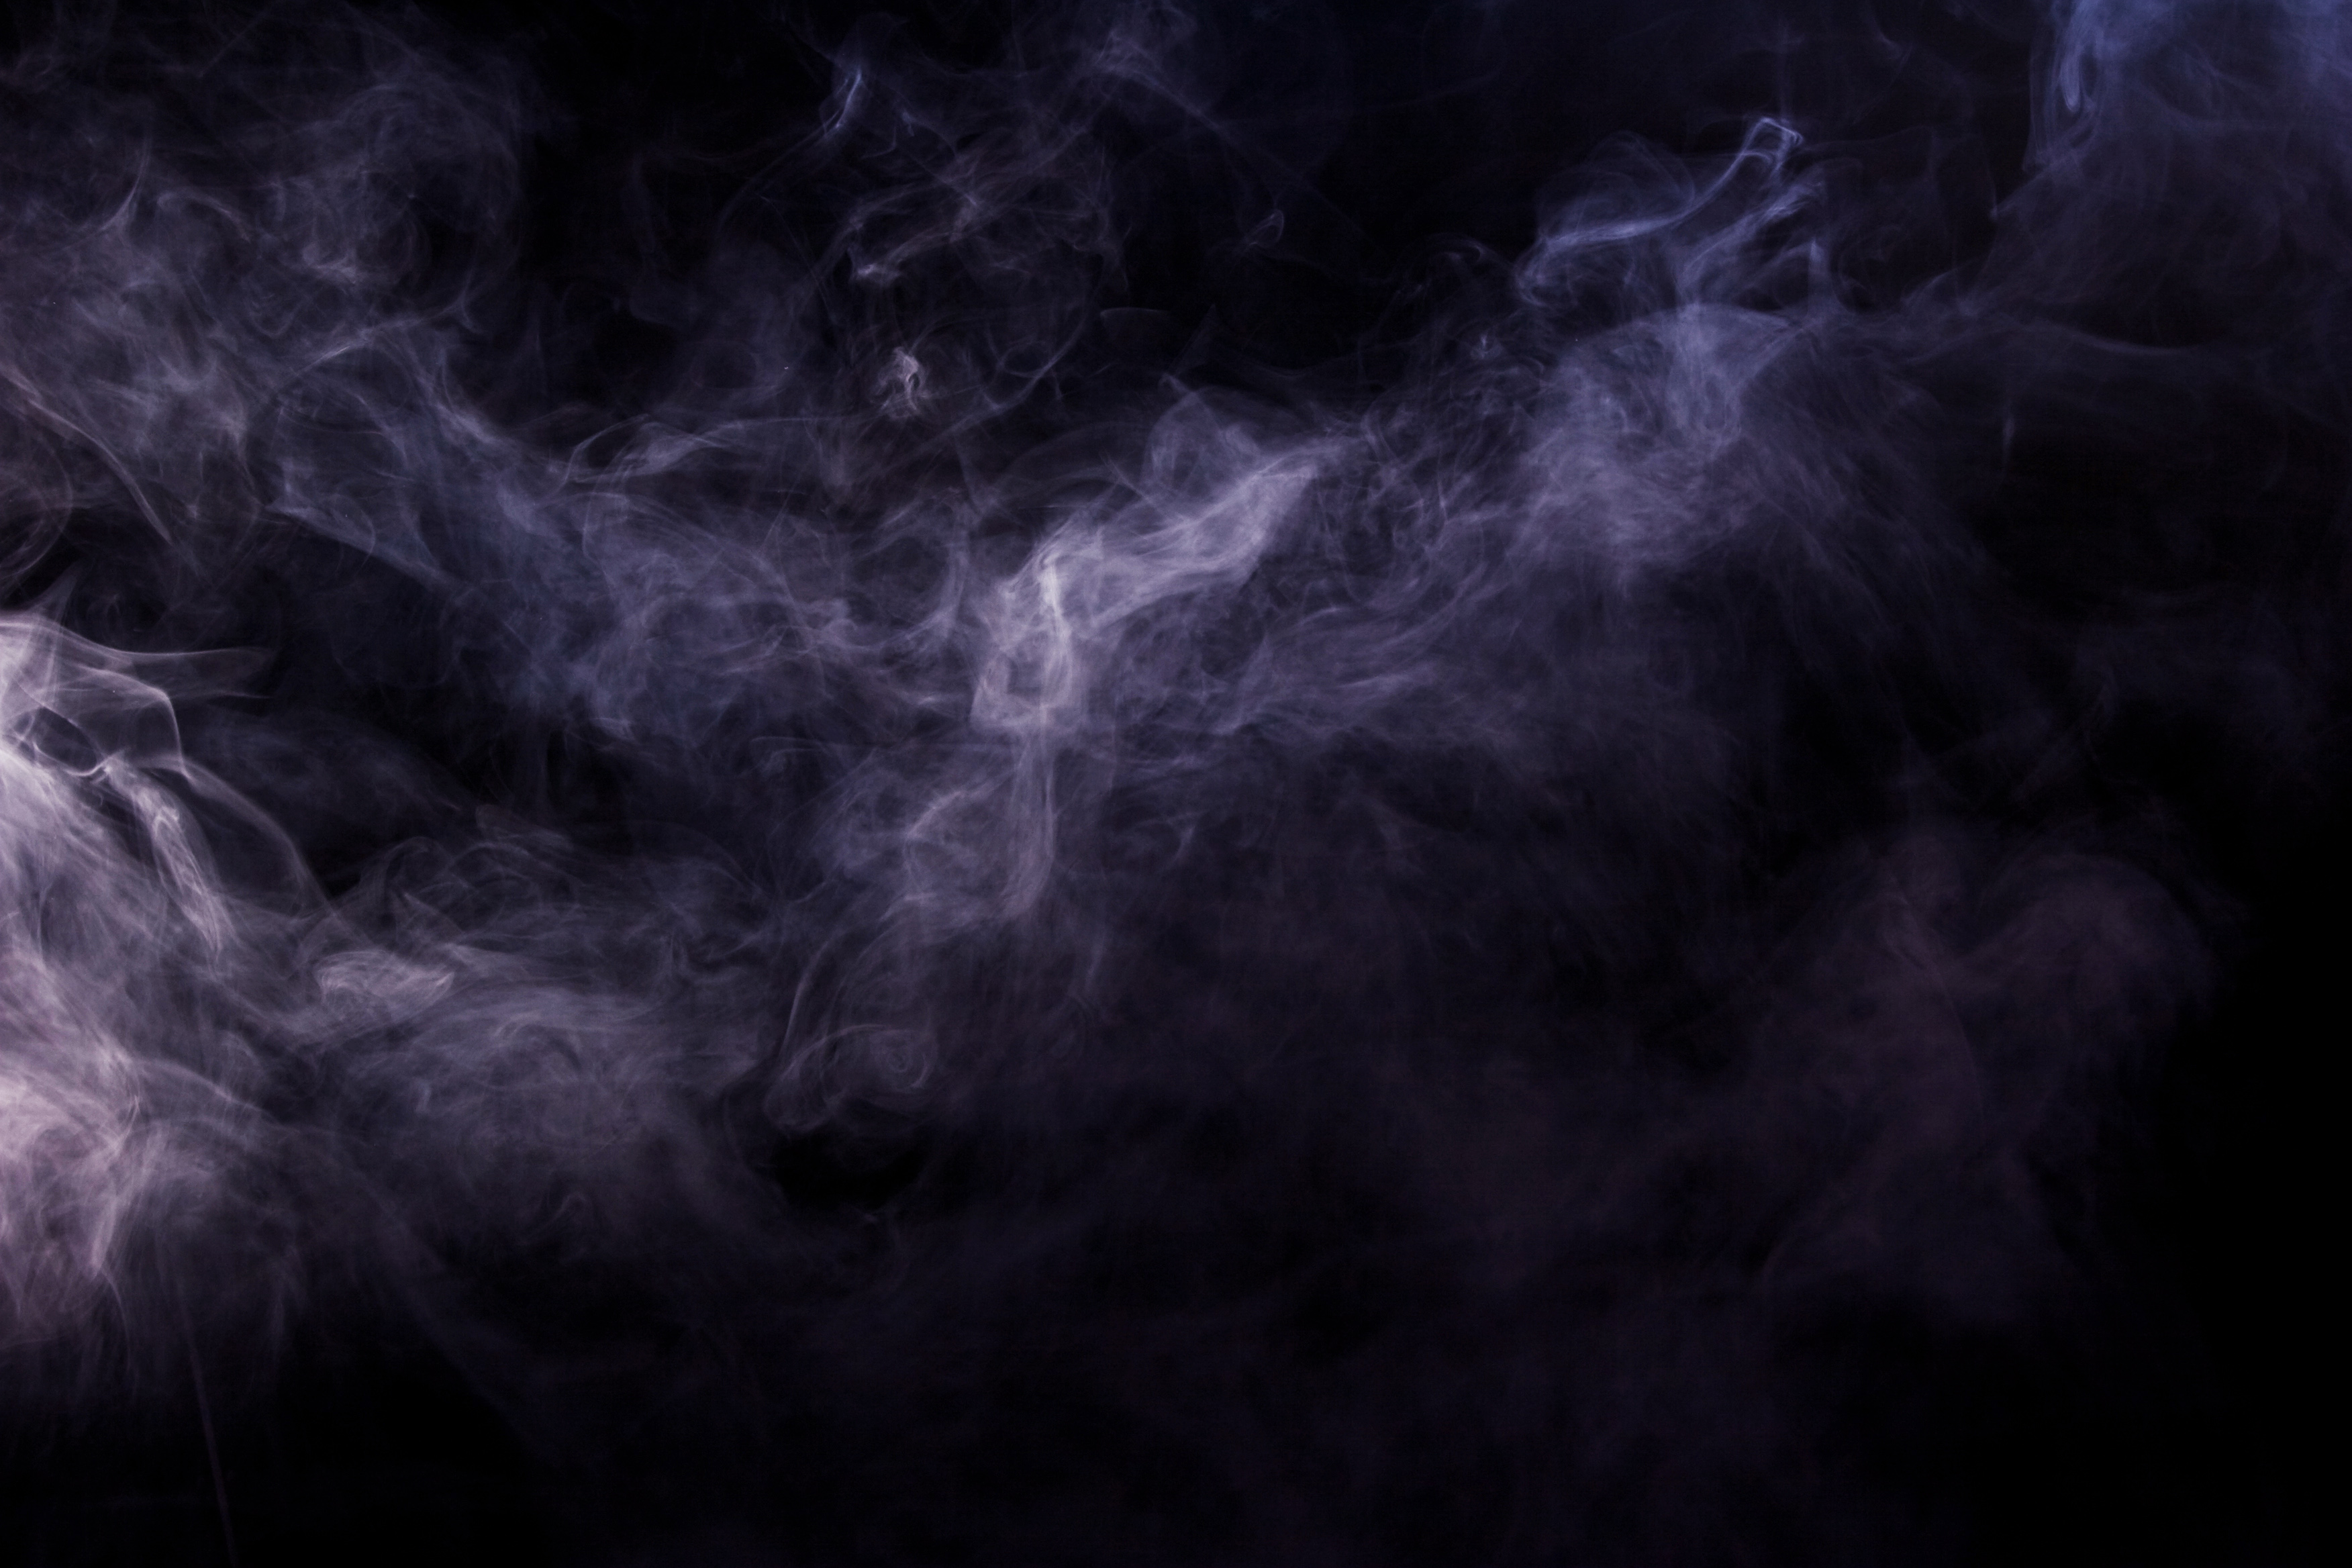 smoke, texture smoke, smoke texture background, download photo smoke   #7893